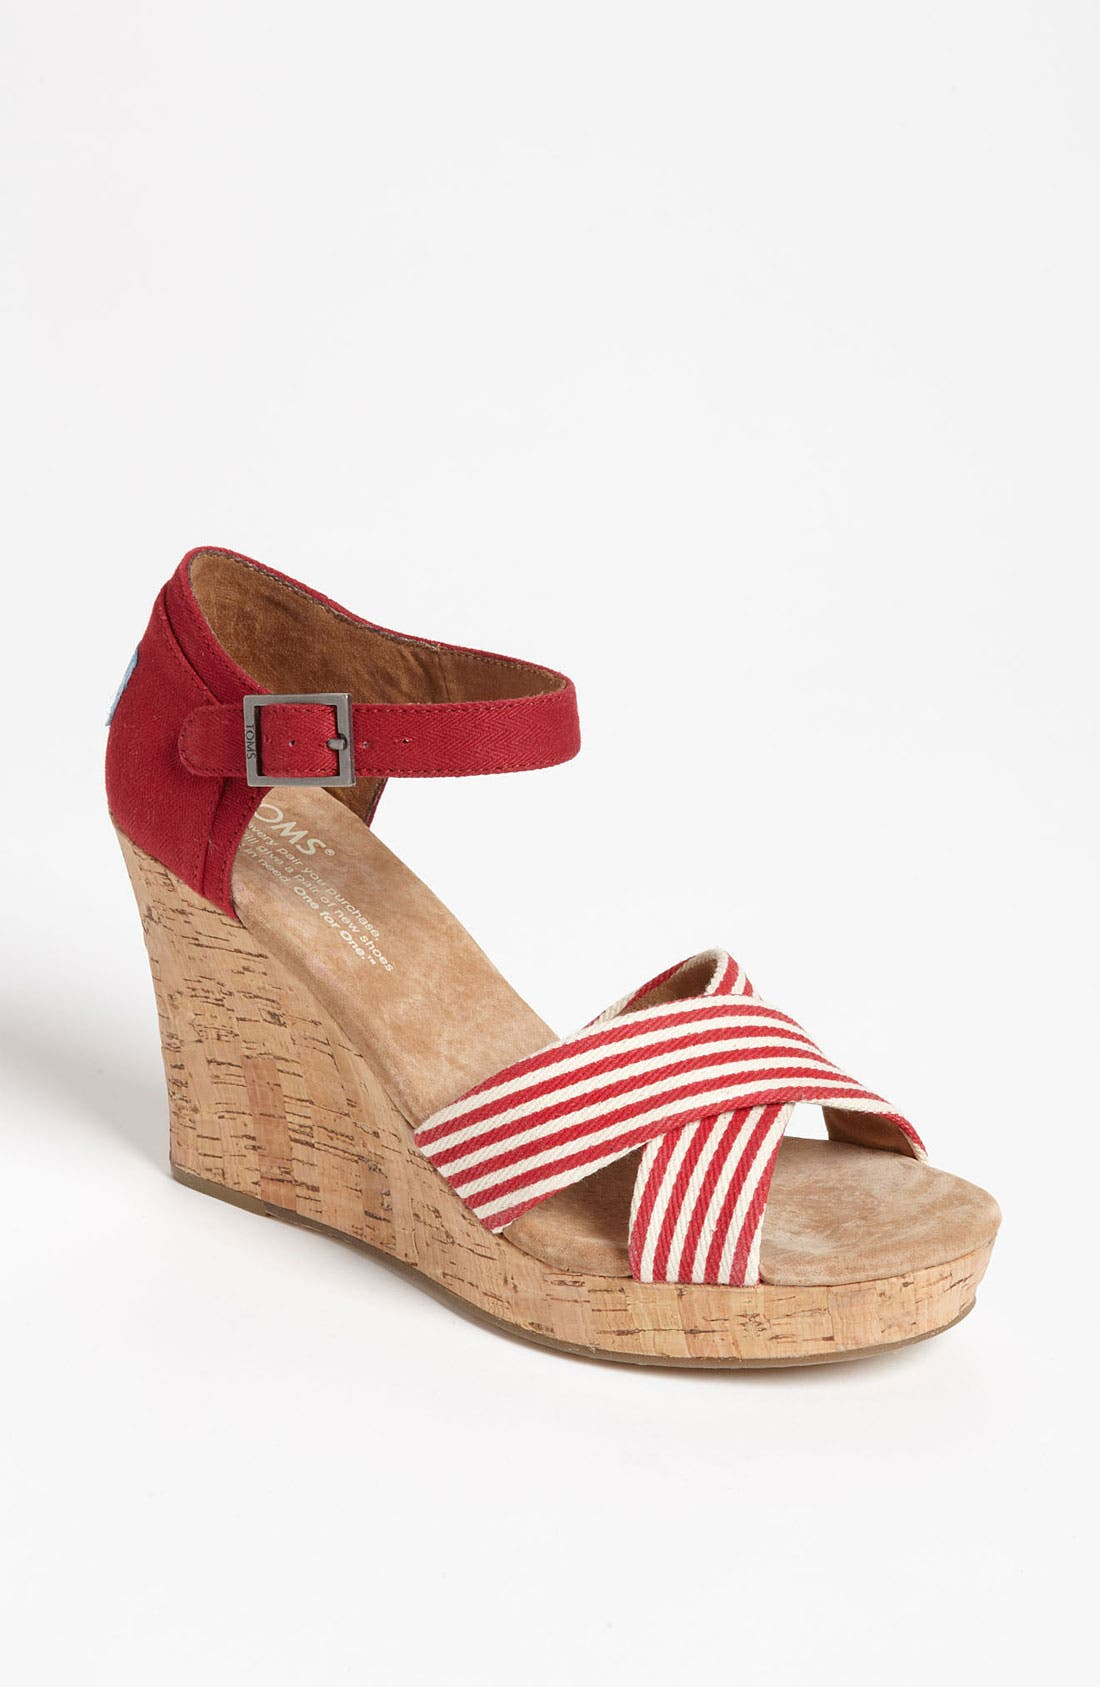 Main Image - TOMS 'University Stripe' Wedge Sandal